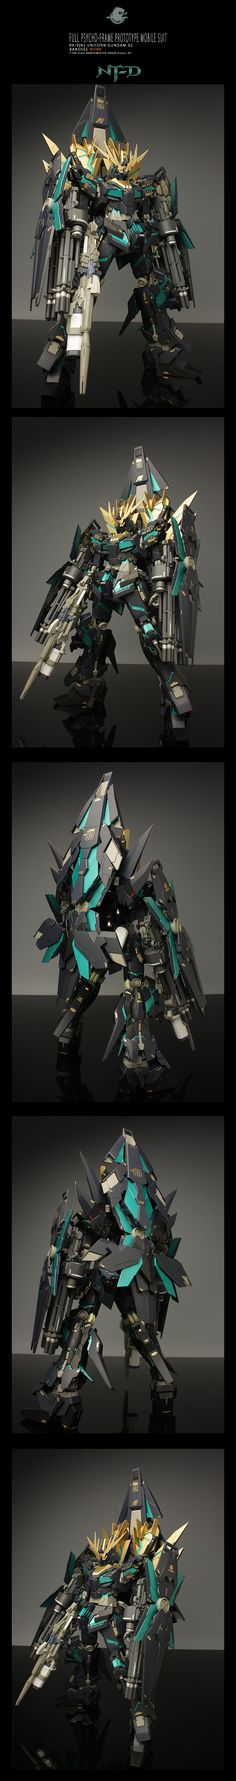 MG 1/100 Unicorn Gundam 02 Banshee Norn. Work by Mosaho.